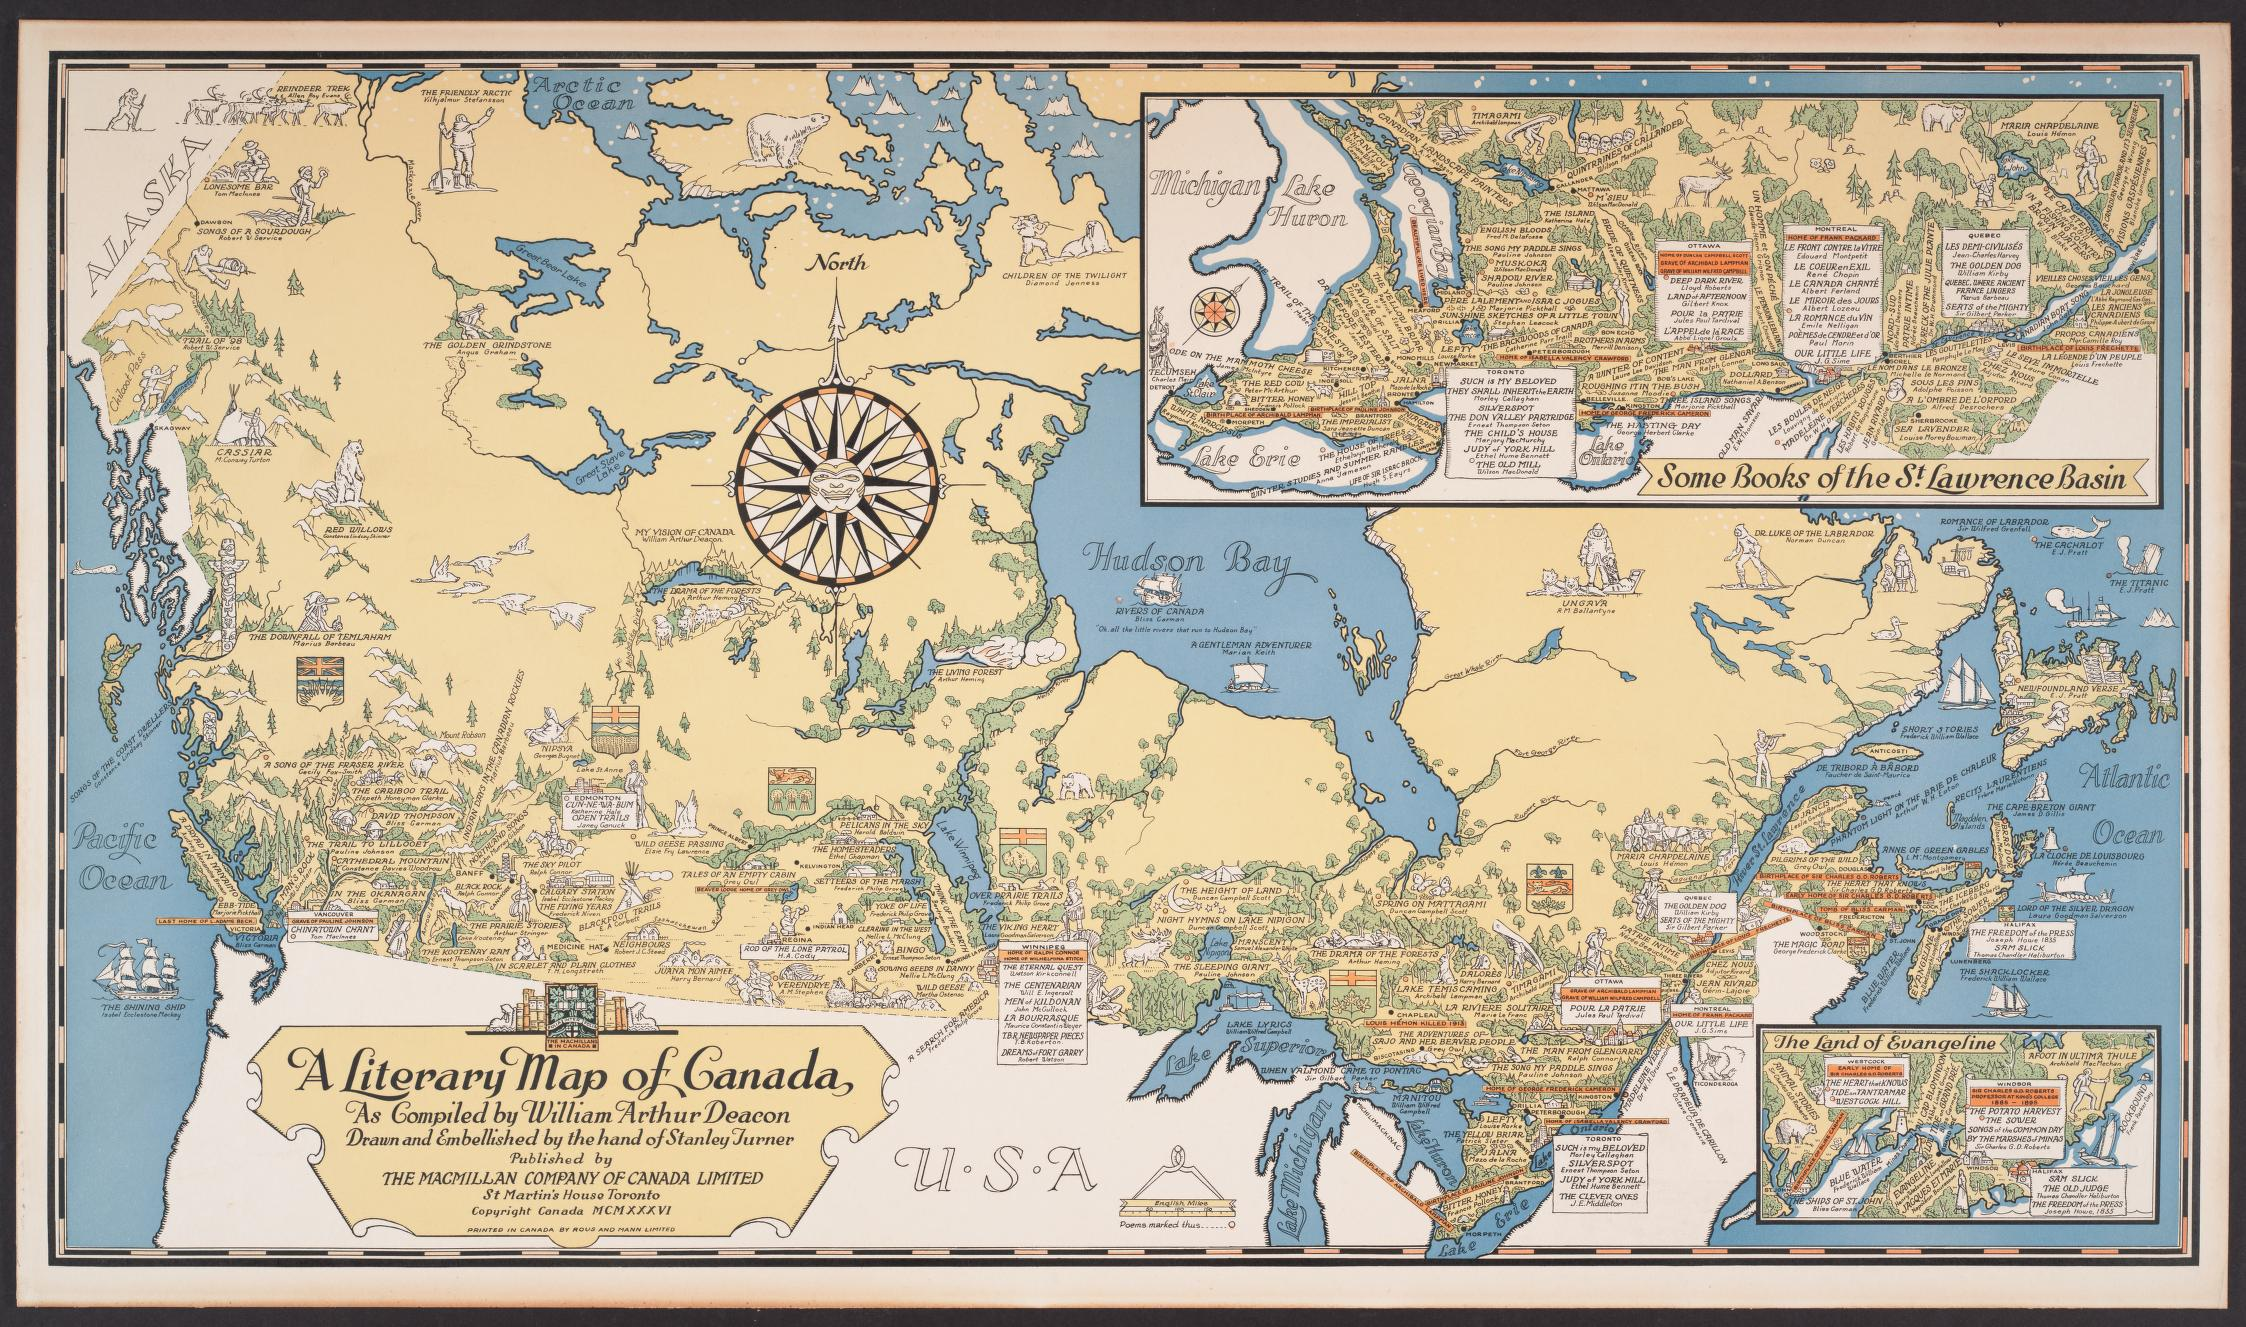 a literary map of canada 1936